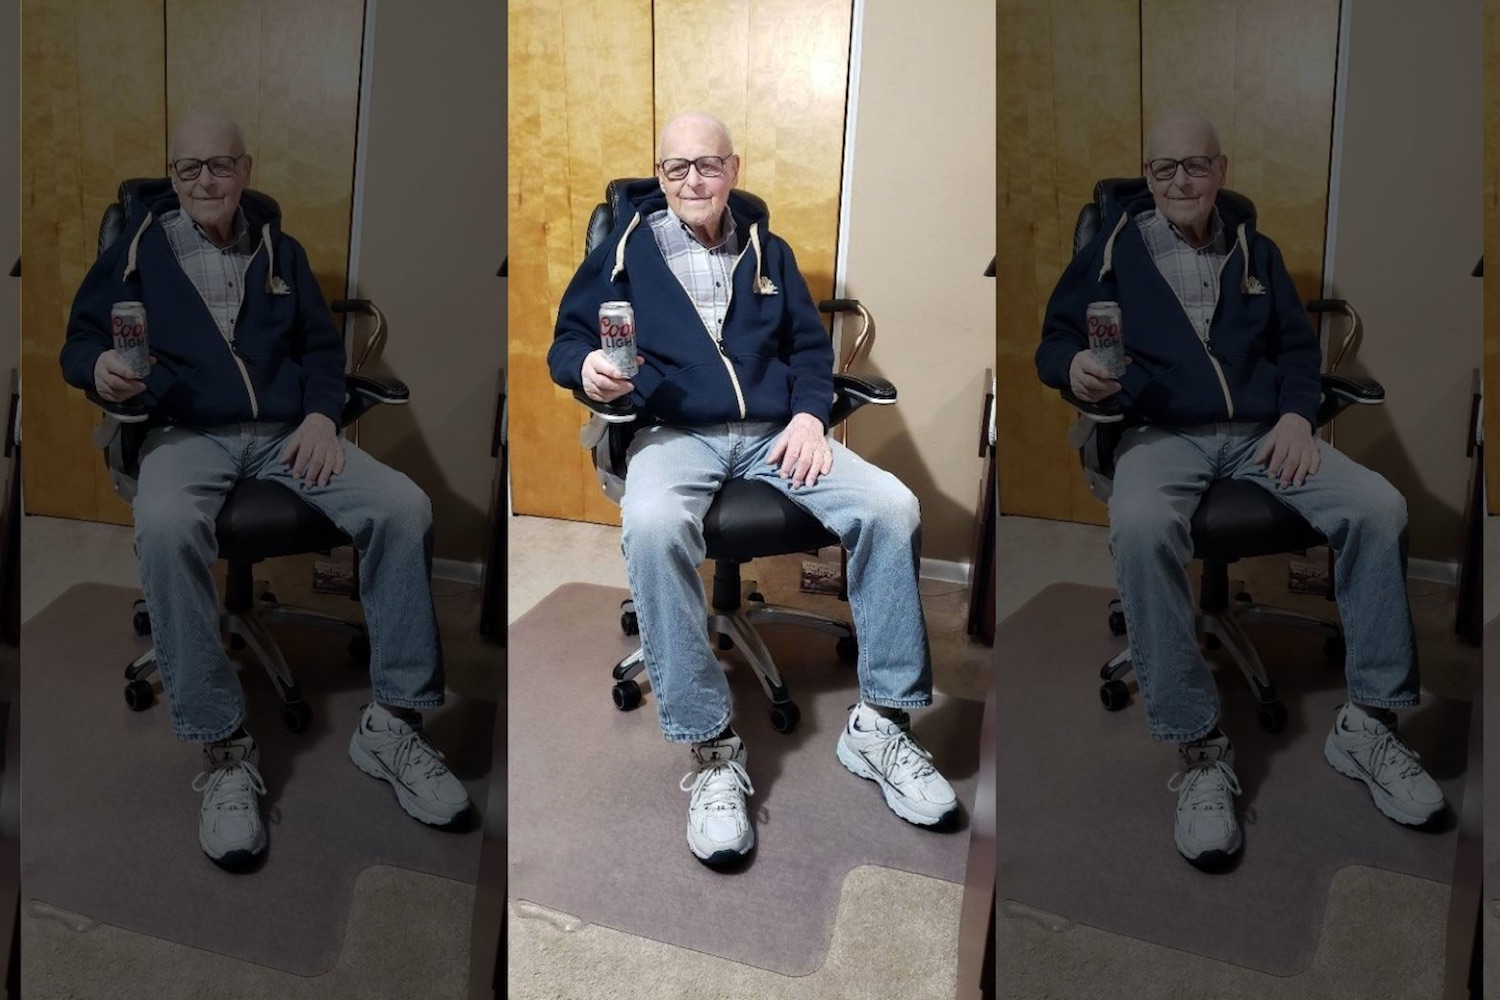 101-Year-Old WWII Veteran Credits Longevity to Daily Coors Light